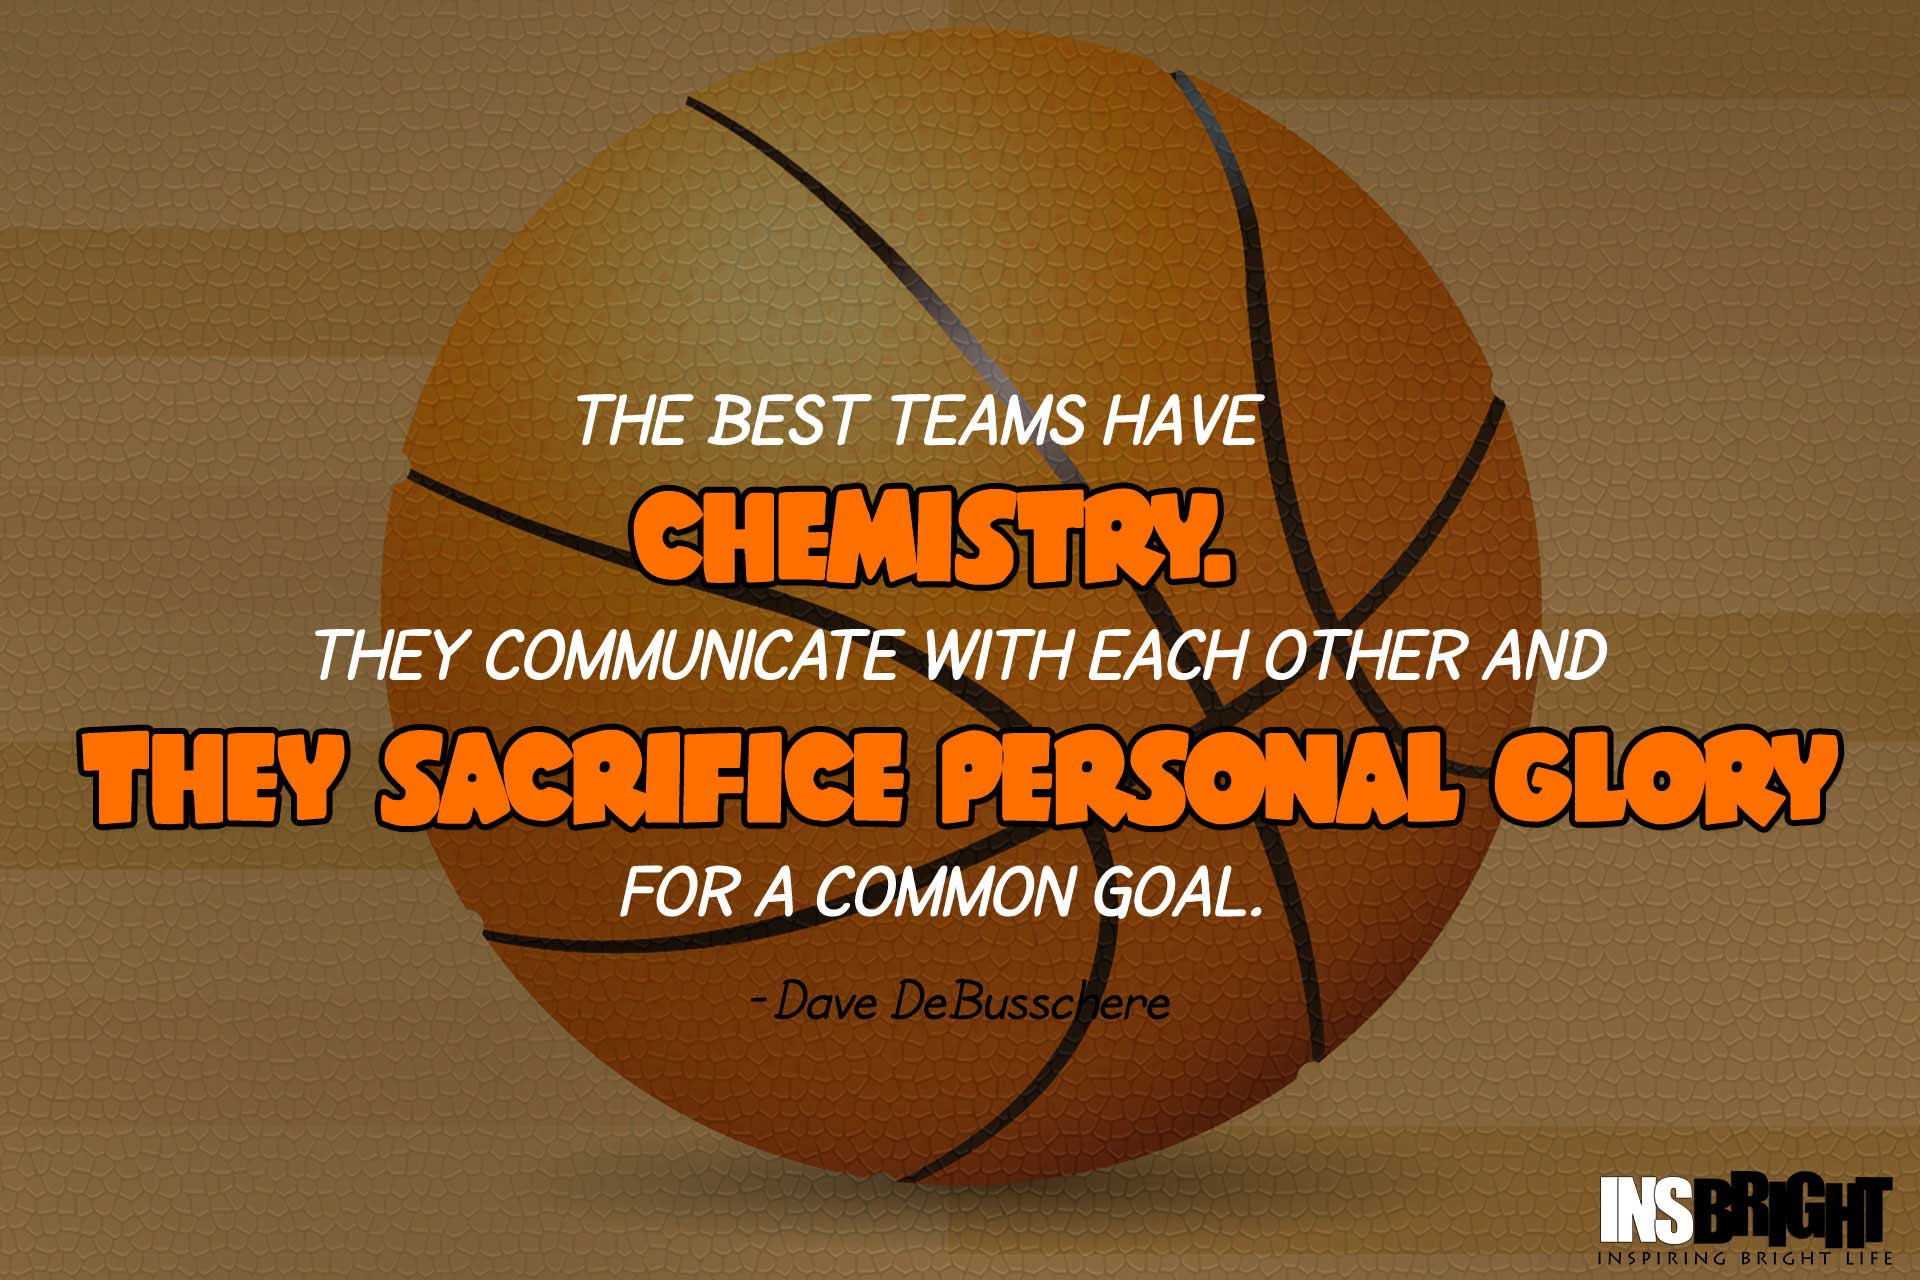 Have A Great Life Quotes 50 Inspirational Basketball Quotes With Pictures  Insbright